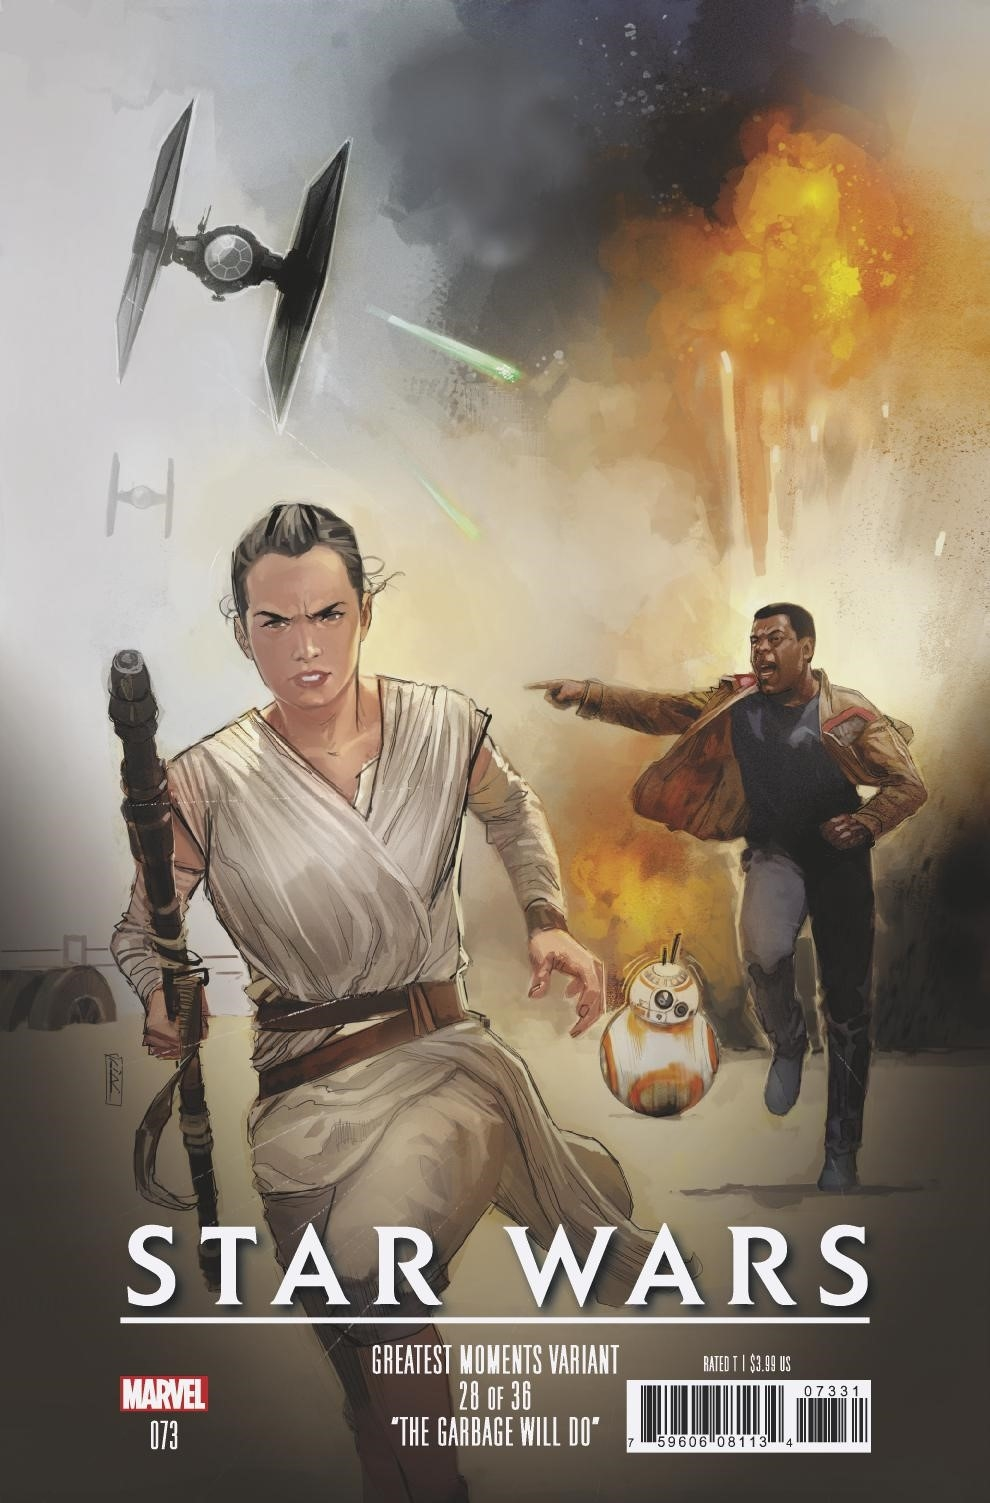 Star Wars #73 (Rod Reis Greatest Moments Variant Cover 28 of 36) (23.10.2019)